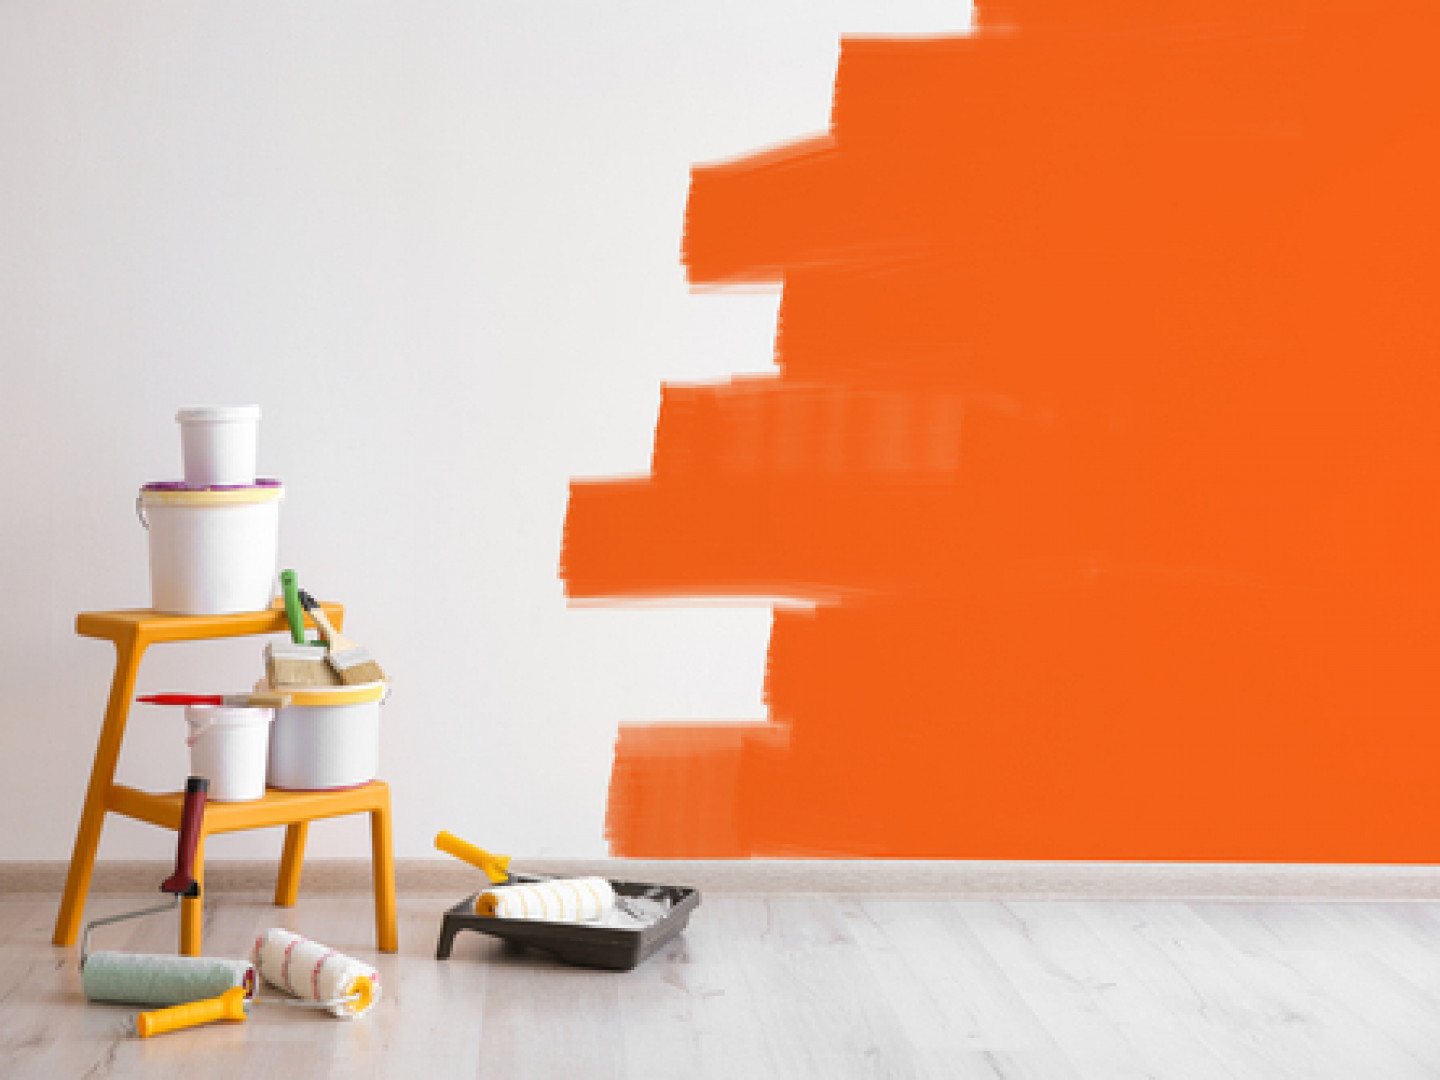 Revive Your Home With a New Coat of Paint